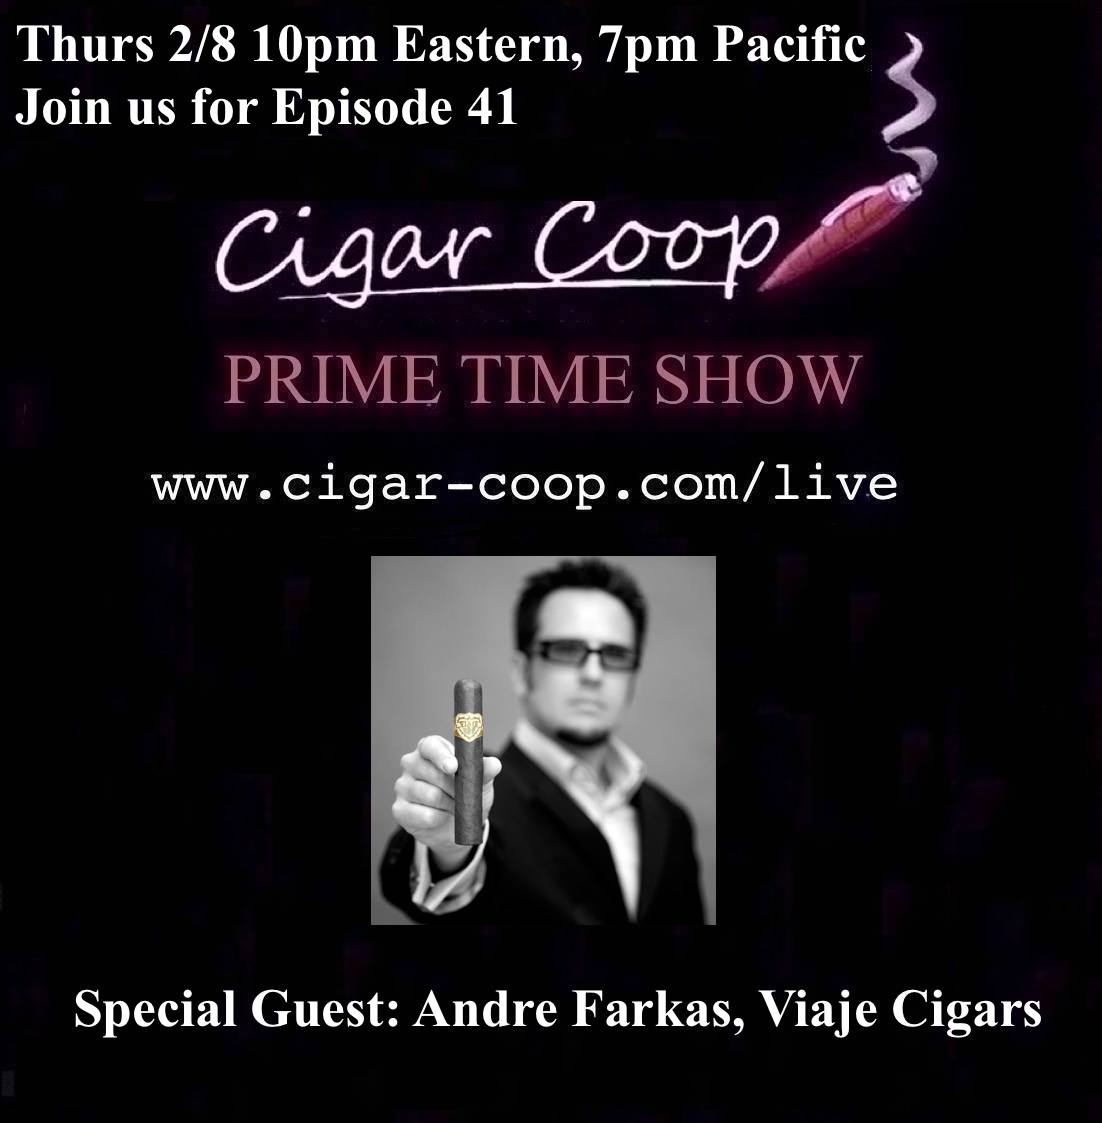 Announcement: Prime Time Show Episode 41 2/8/18 10pm Eastern, 7pm Pacific